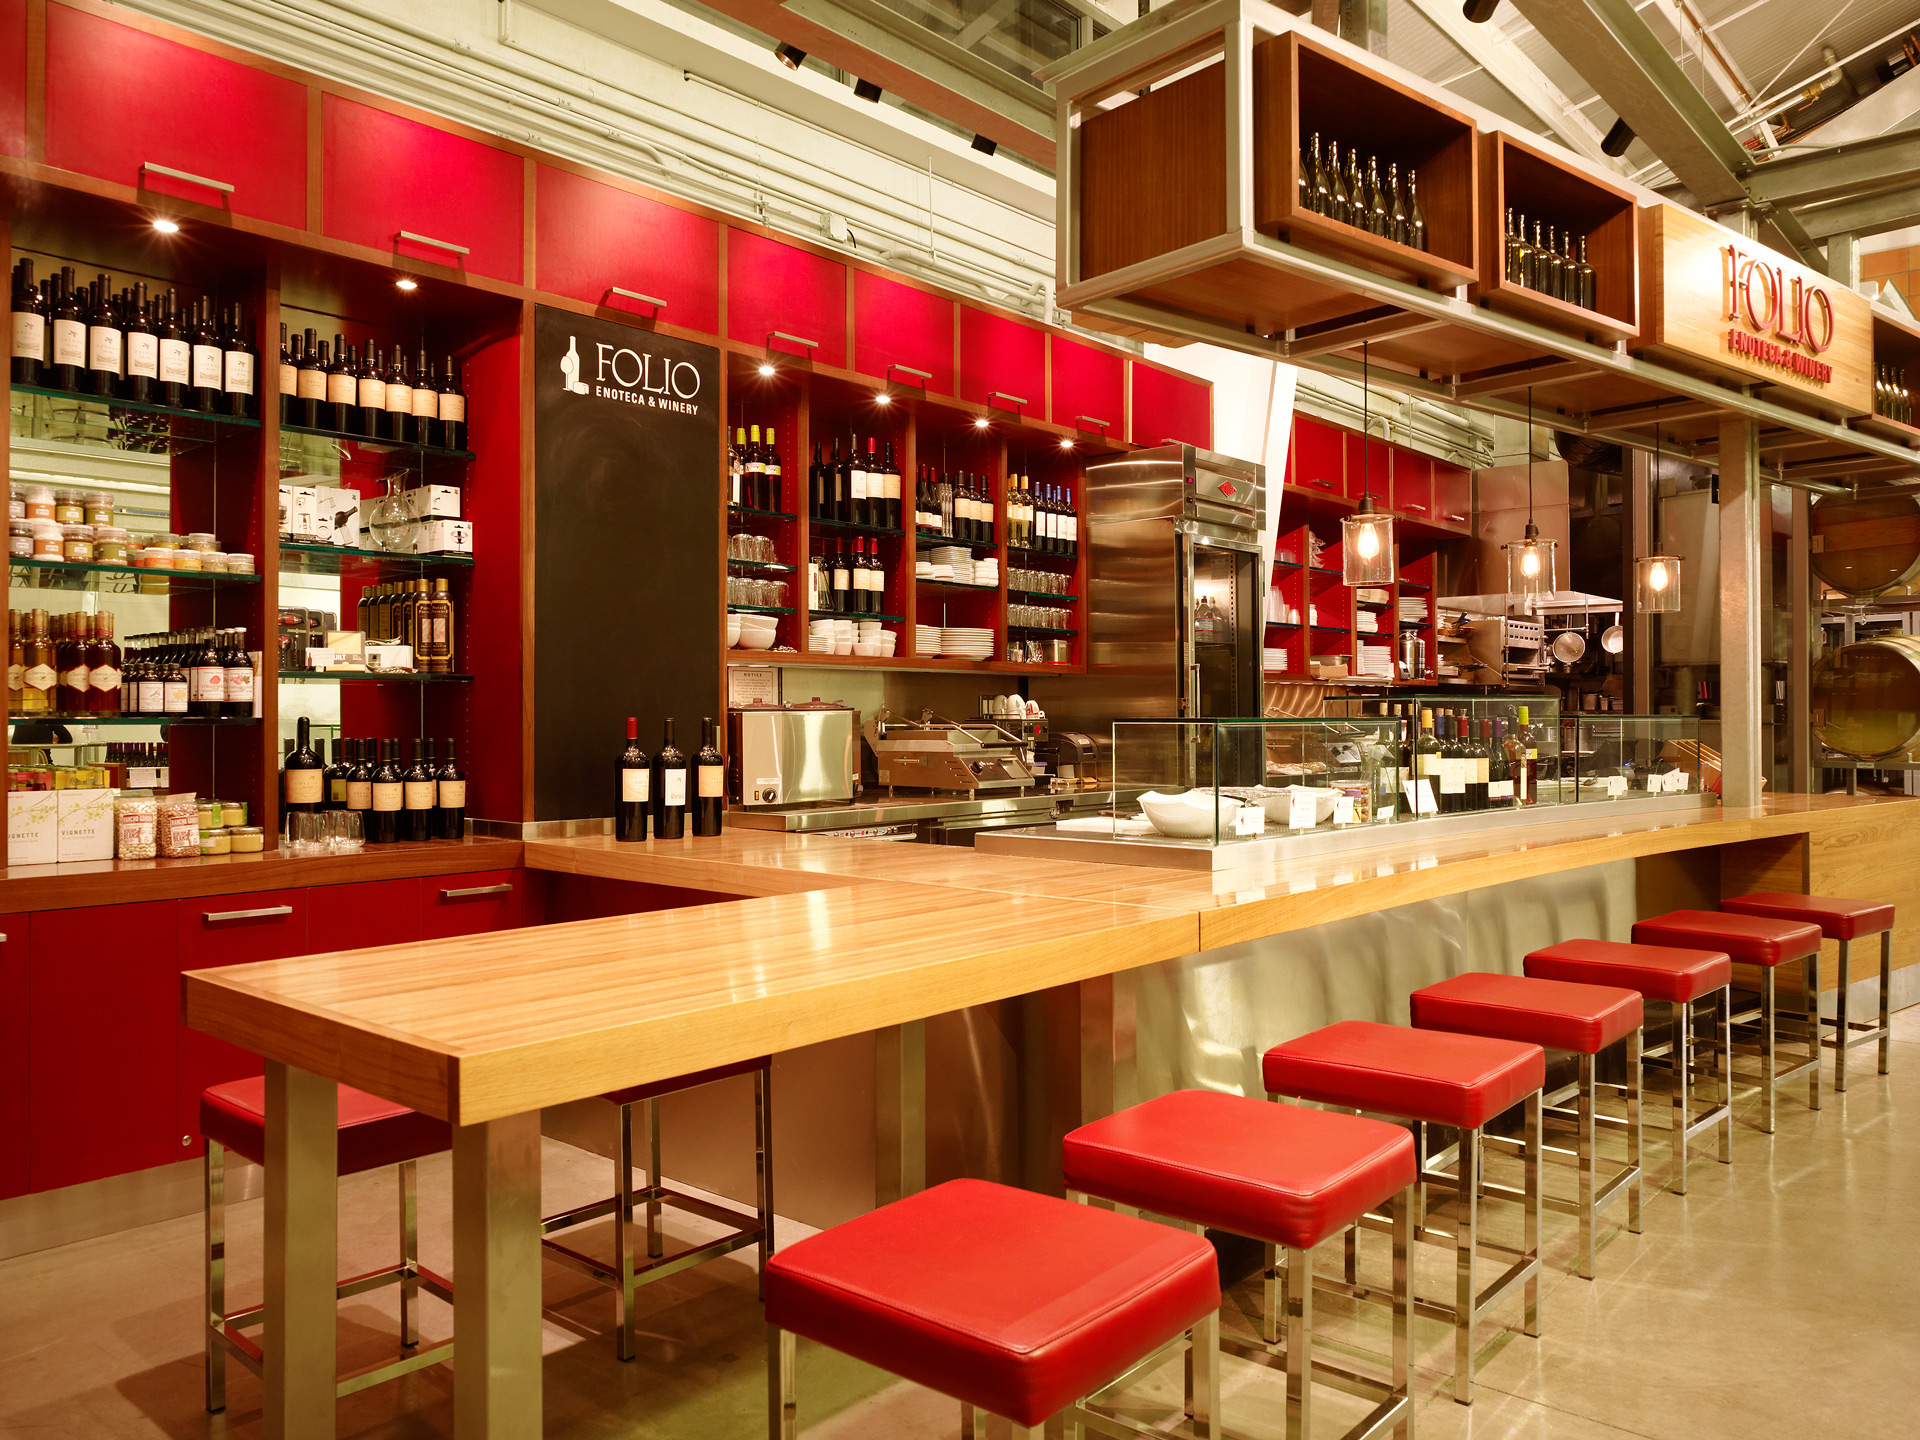 Folio Enoteca & Winery restaurant deign ideas